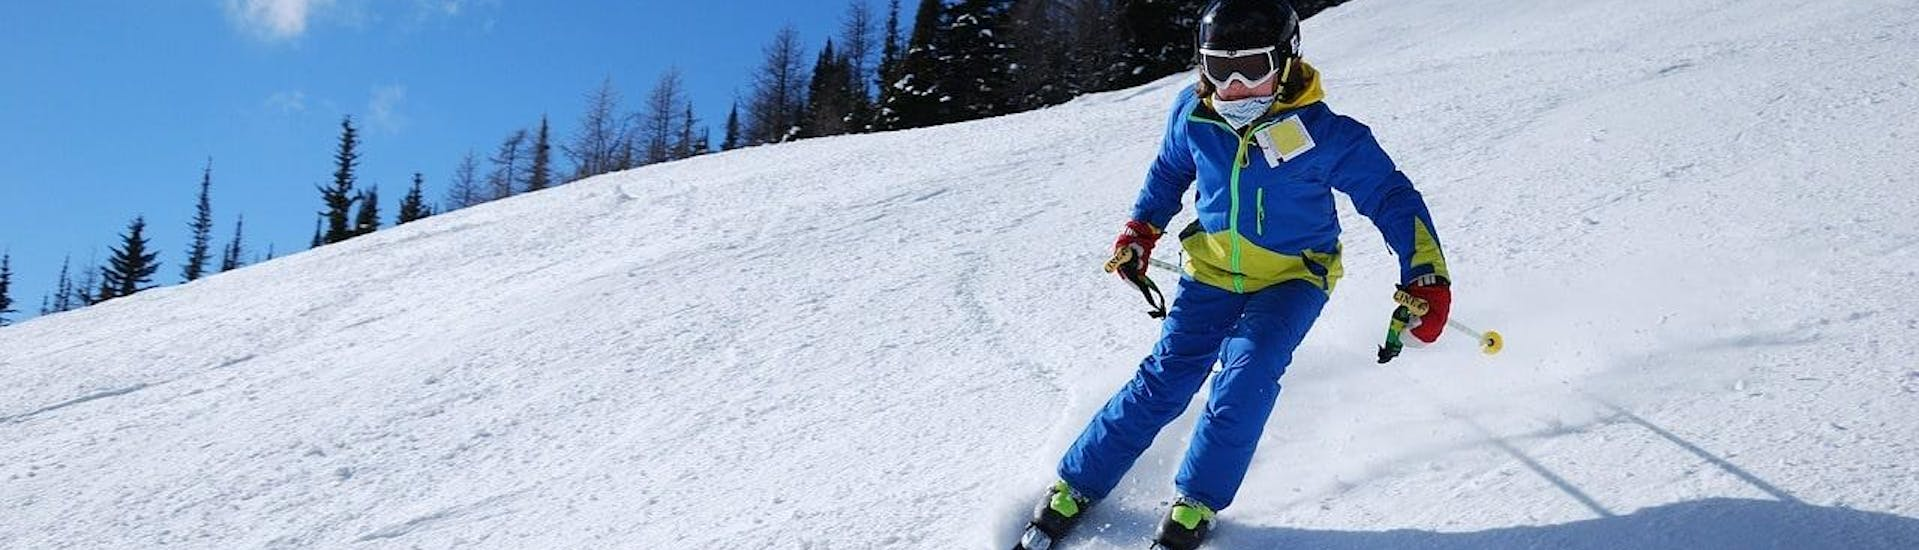 A skier is skiing down a slope with confidence during their Private Ski Lessons for Kids - Holidays with the ski school Moonshot La Bresse.